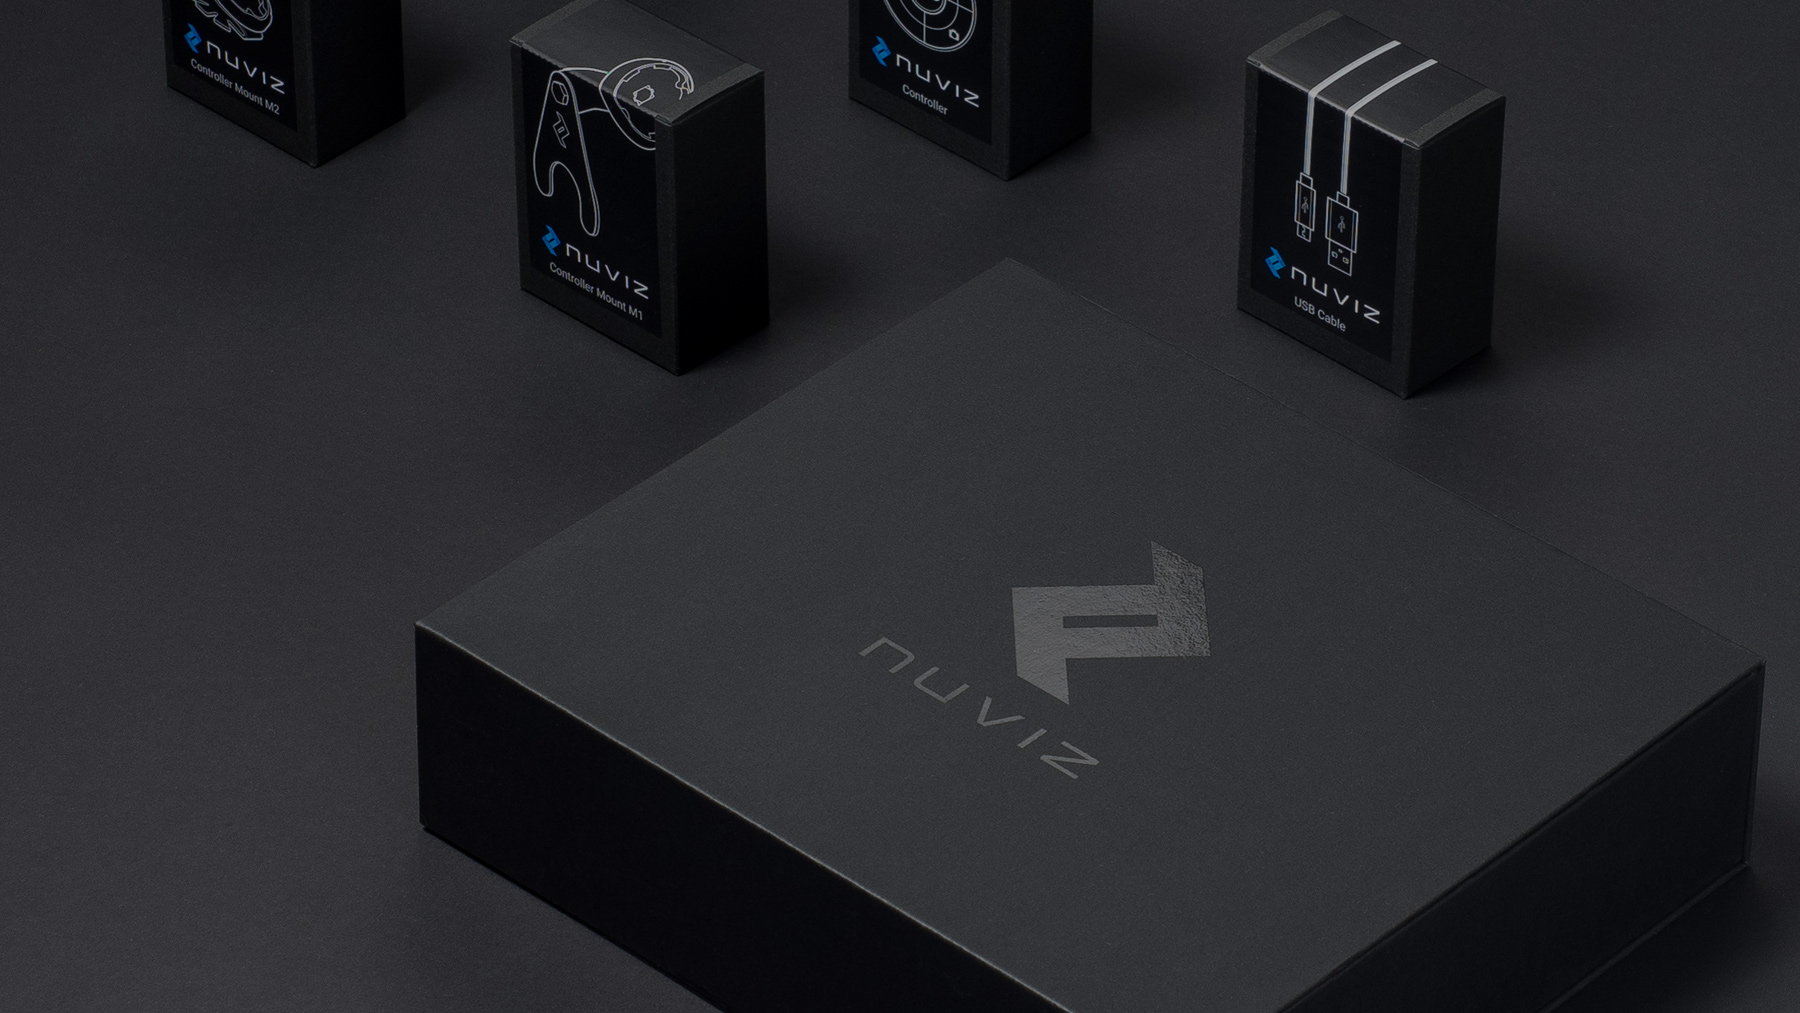 Nuviz packaging design